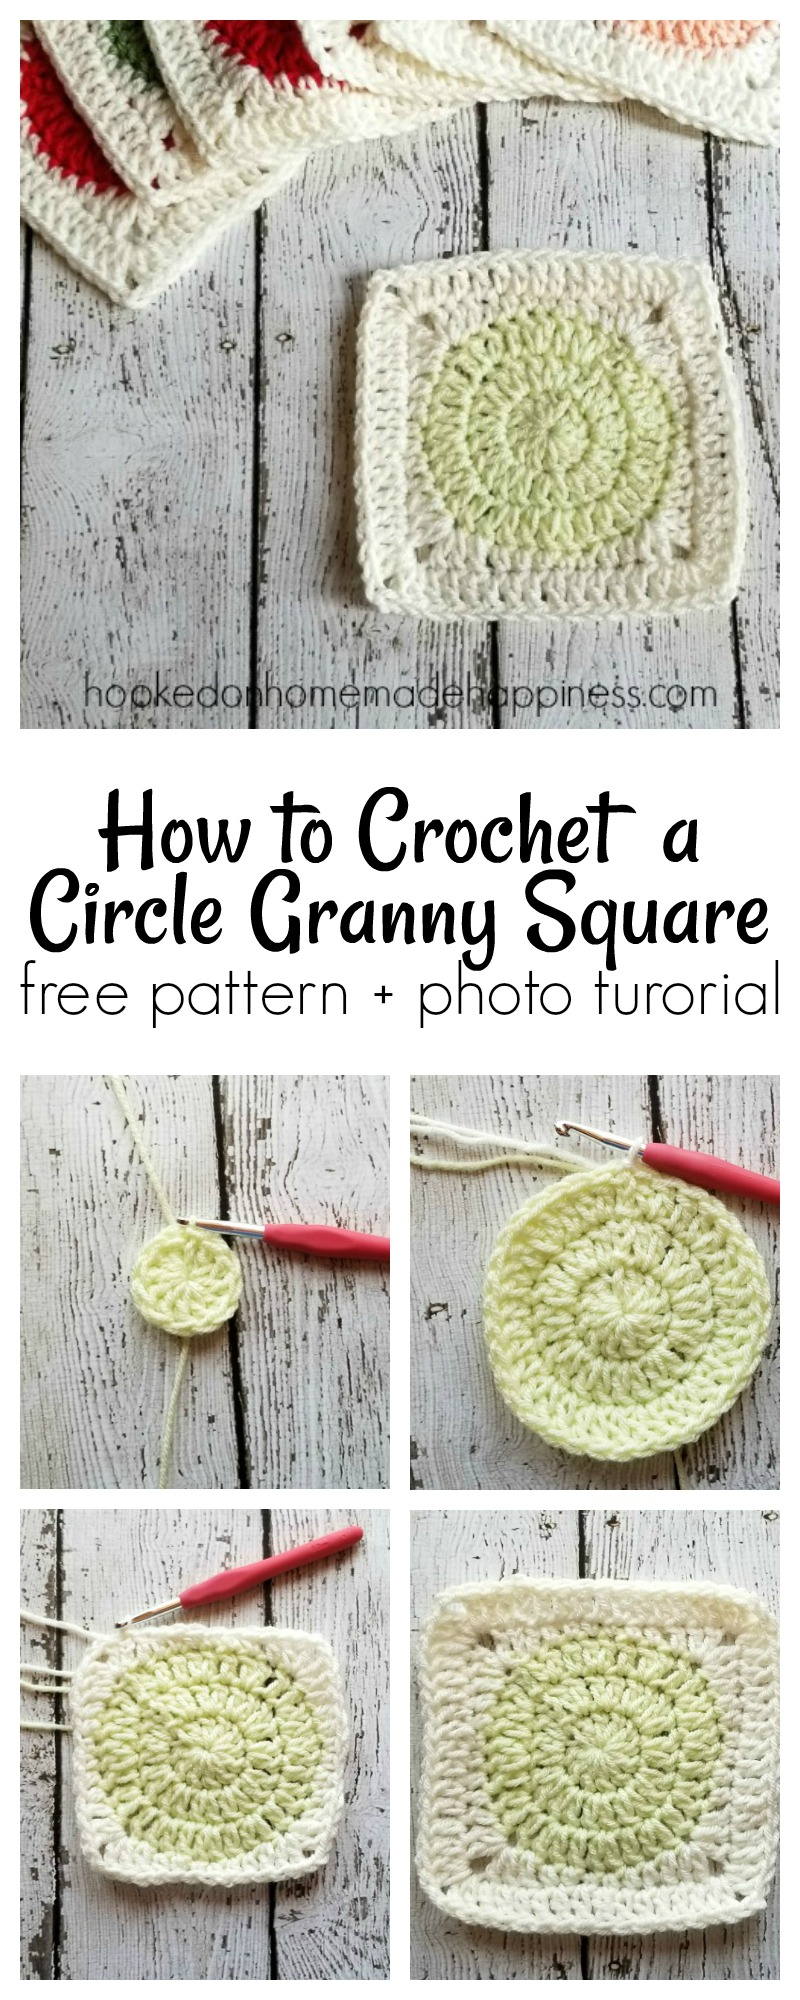 circle granny square long | Hooked on Homemade Happiness